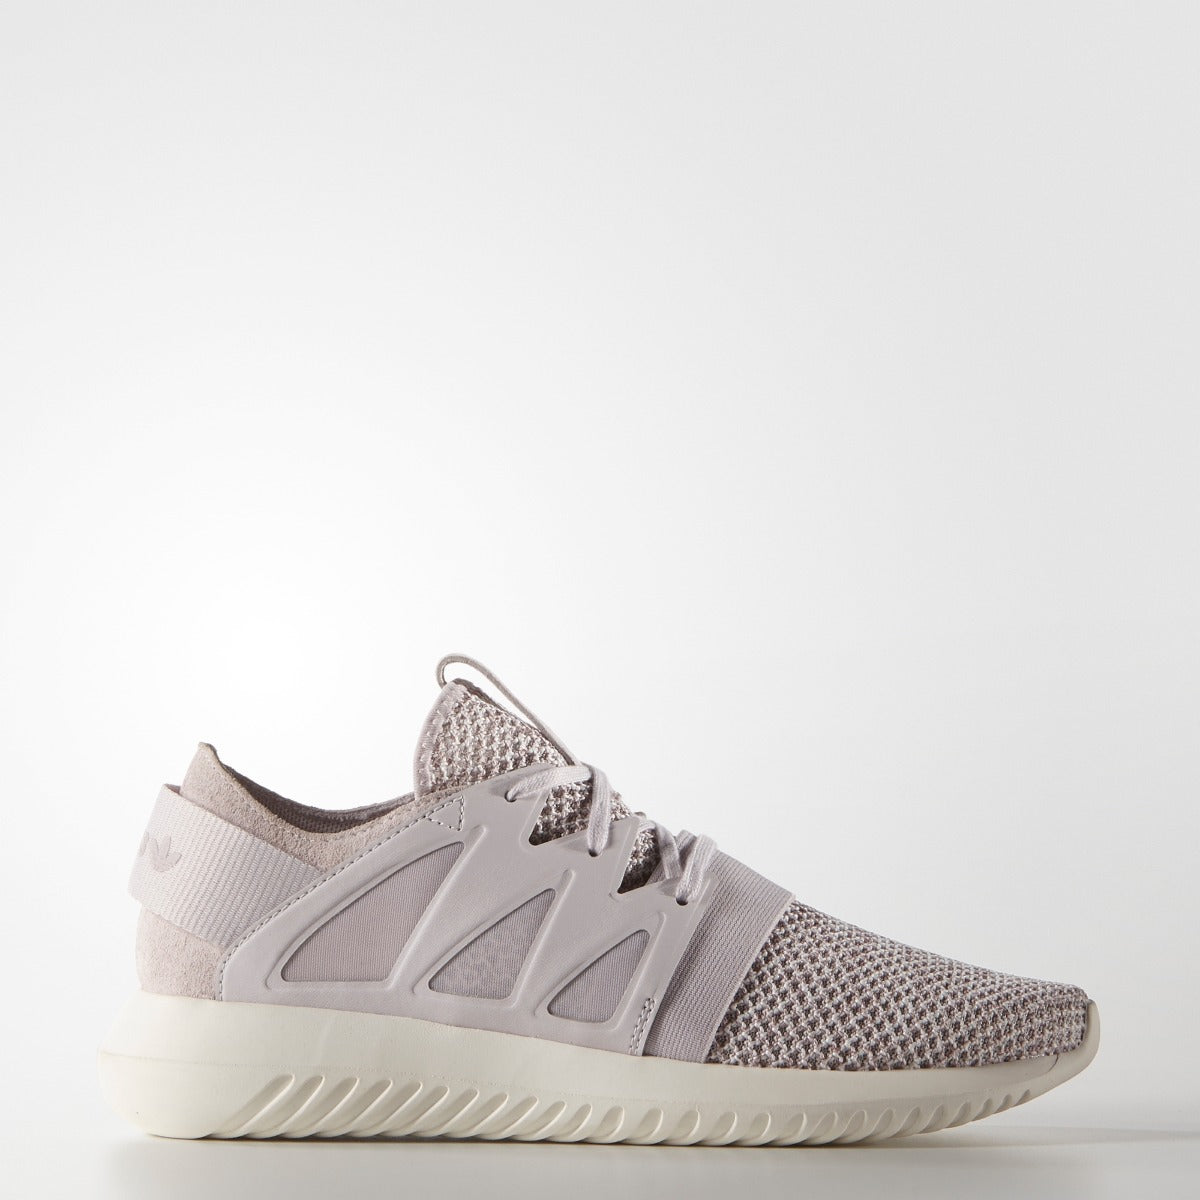 4a9d1c95a859 Women s Adidas Originals Tubular Viral Ice Purple S75906